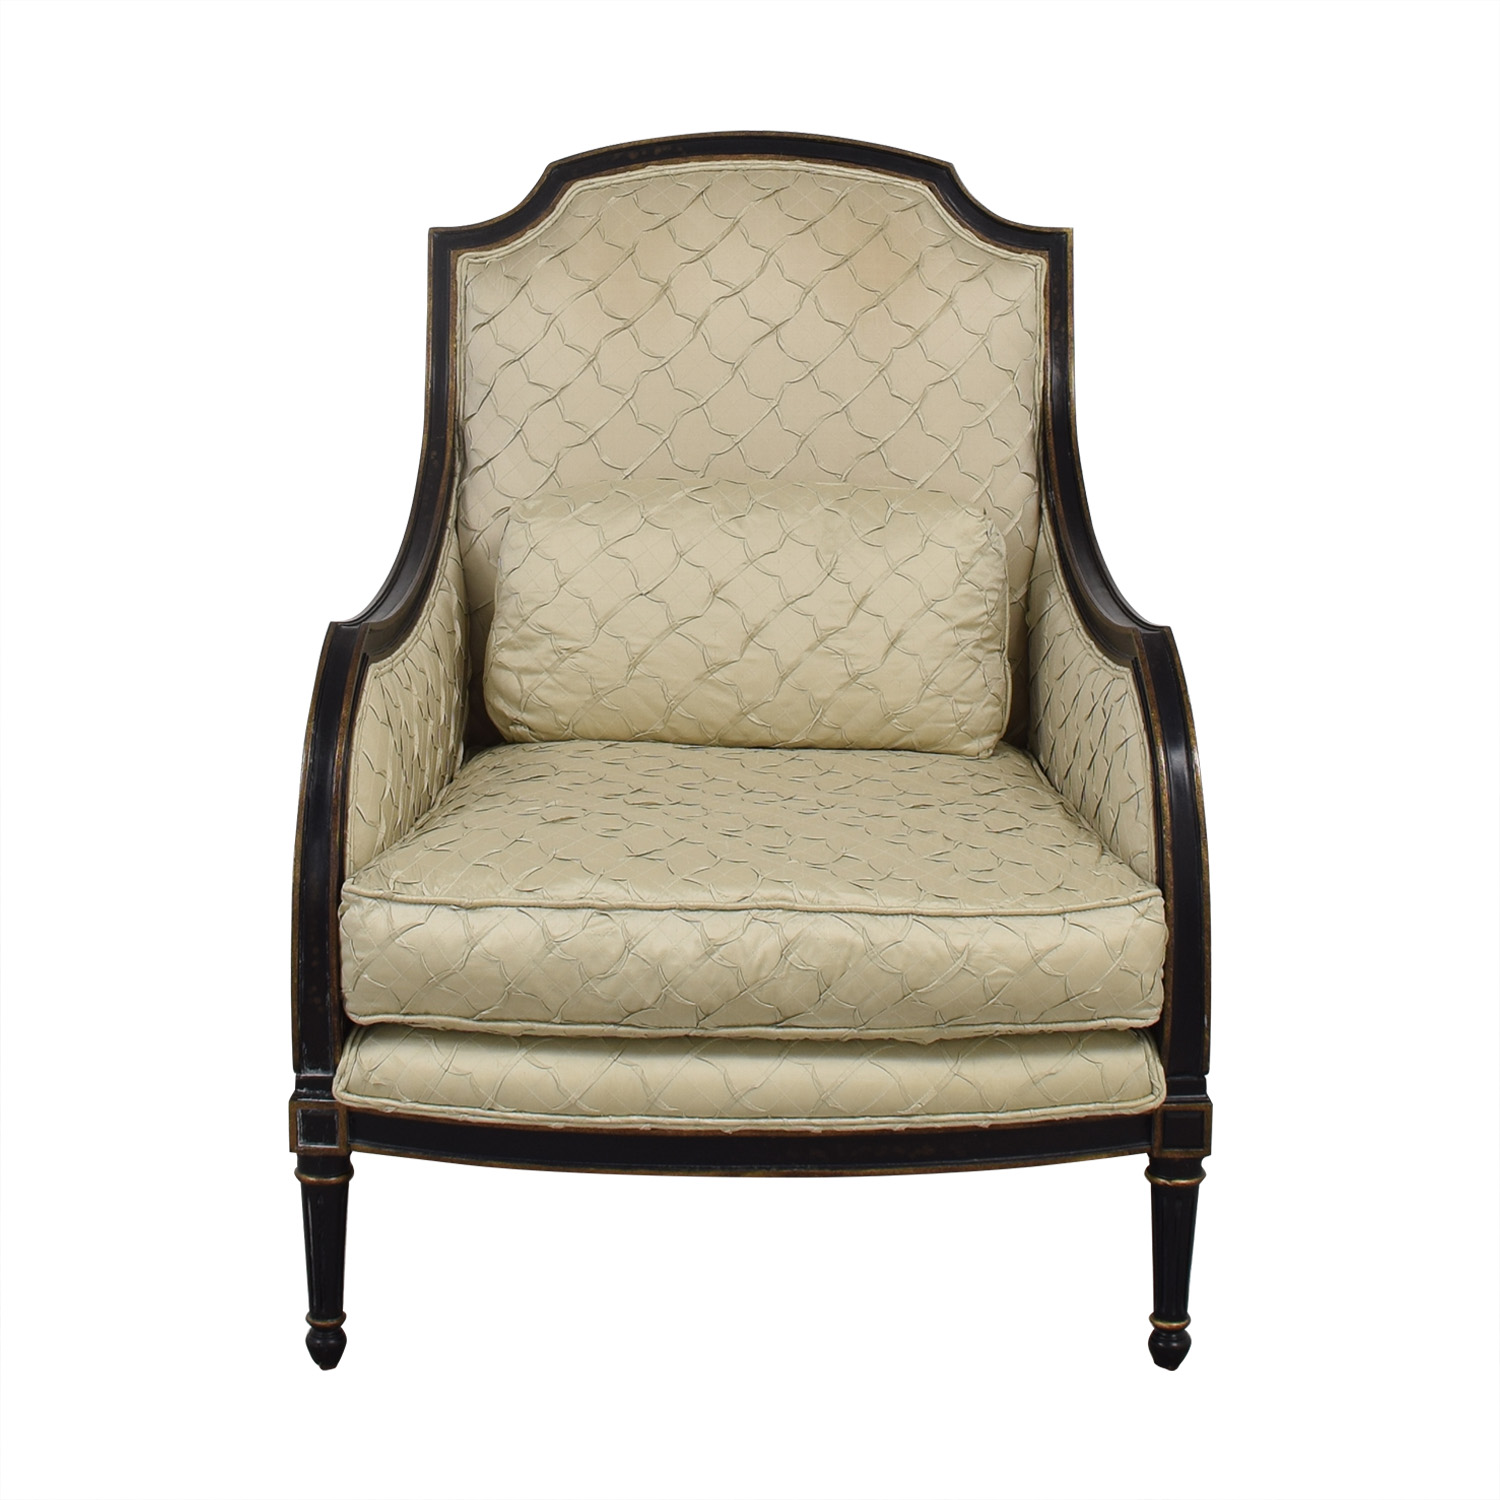 Jardine Ent Quilted Side Chair ma